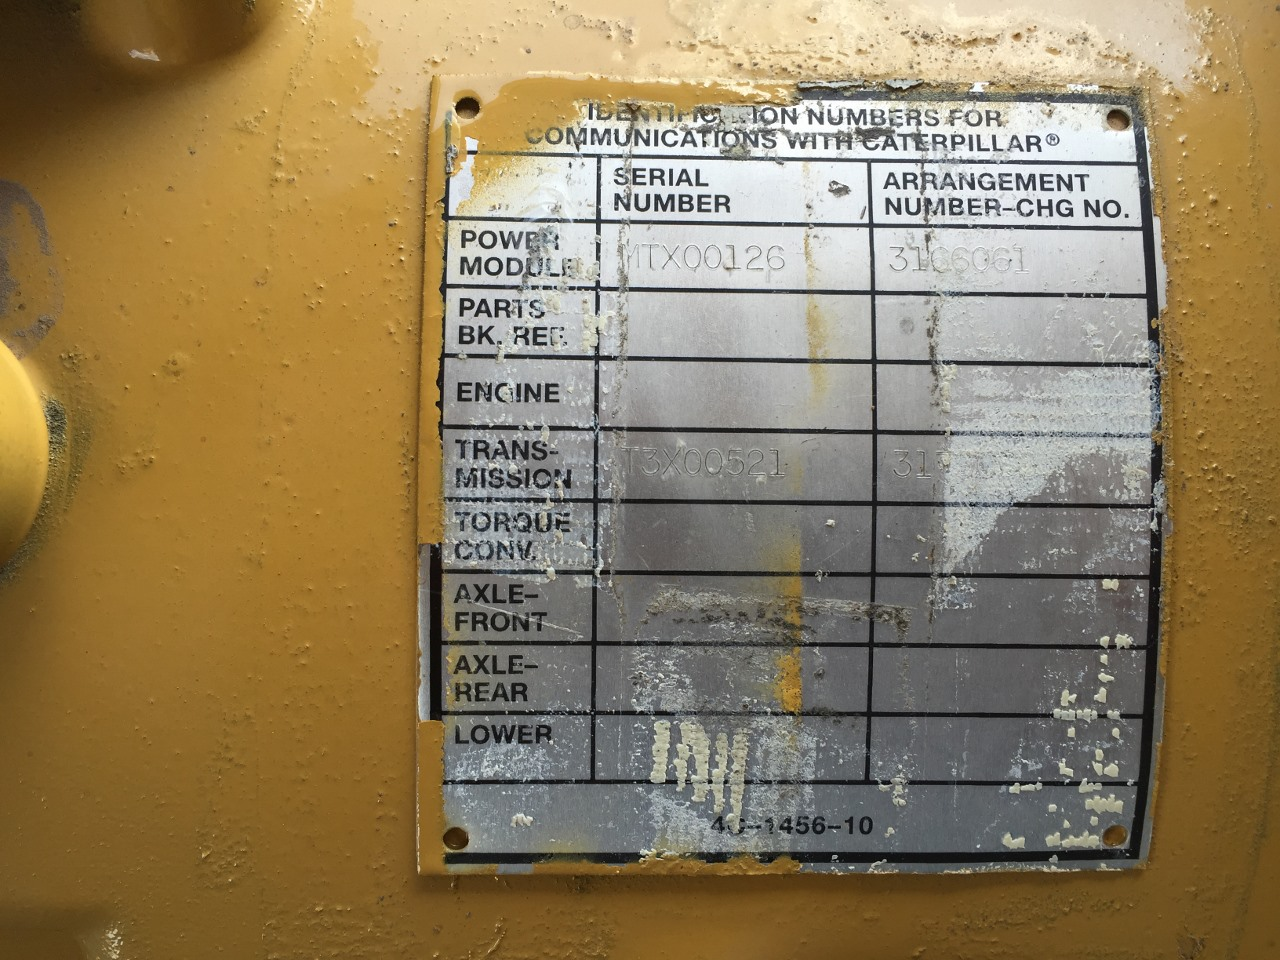 2008 New Caterpillar Transmission, Built for C-9 Cat Engine, Never Used,  Arr #-317-9068, Dimensions-40